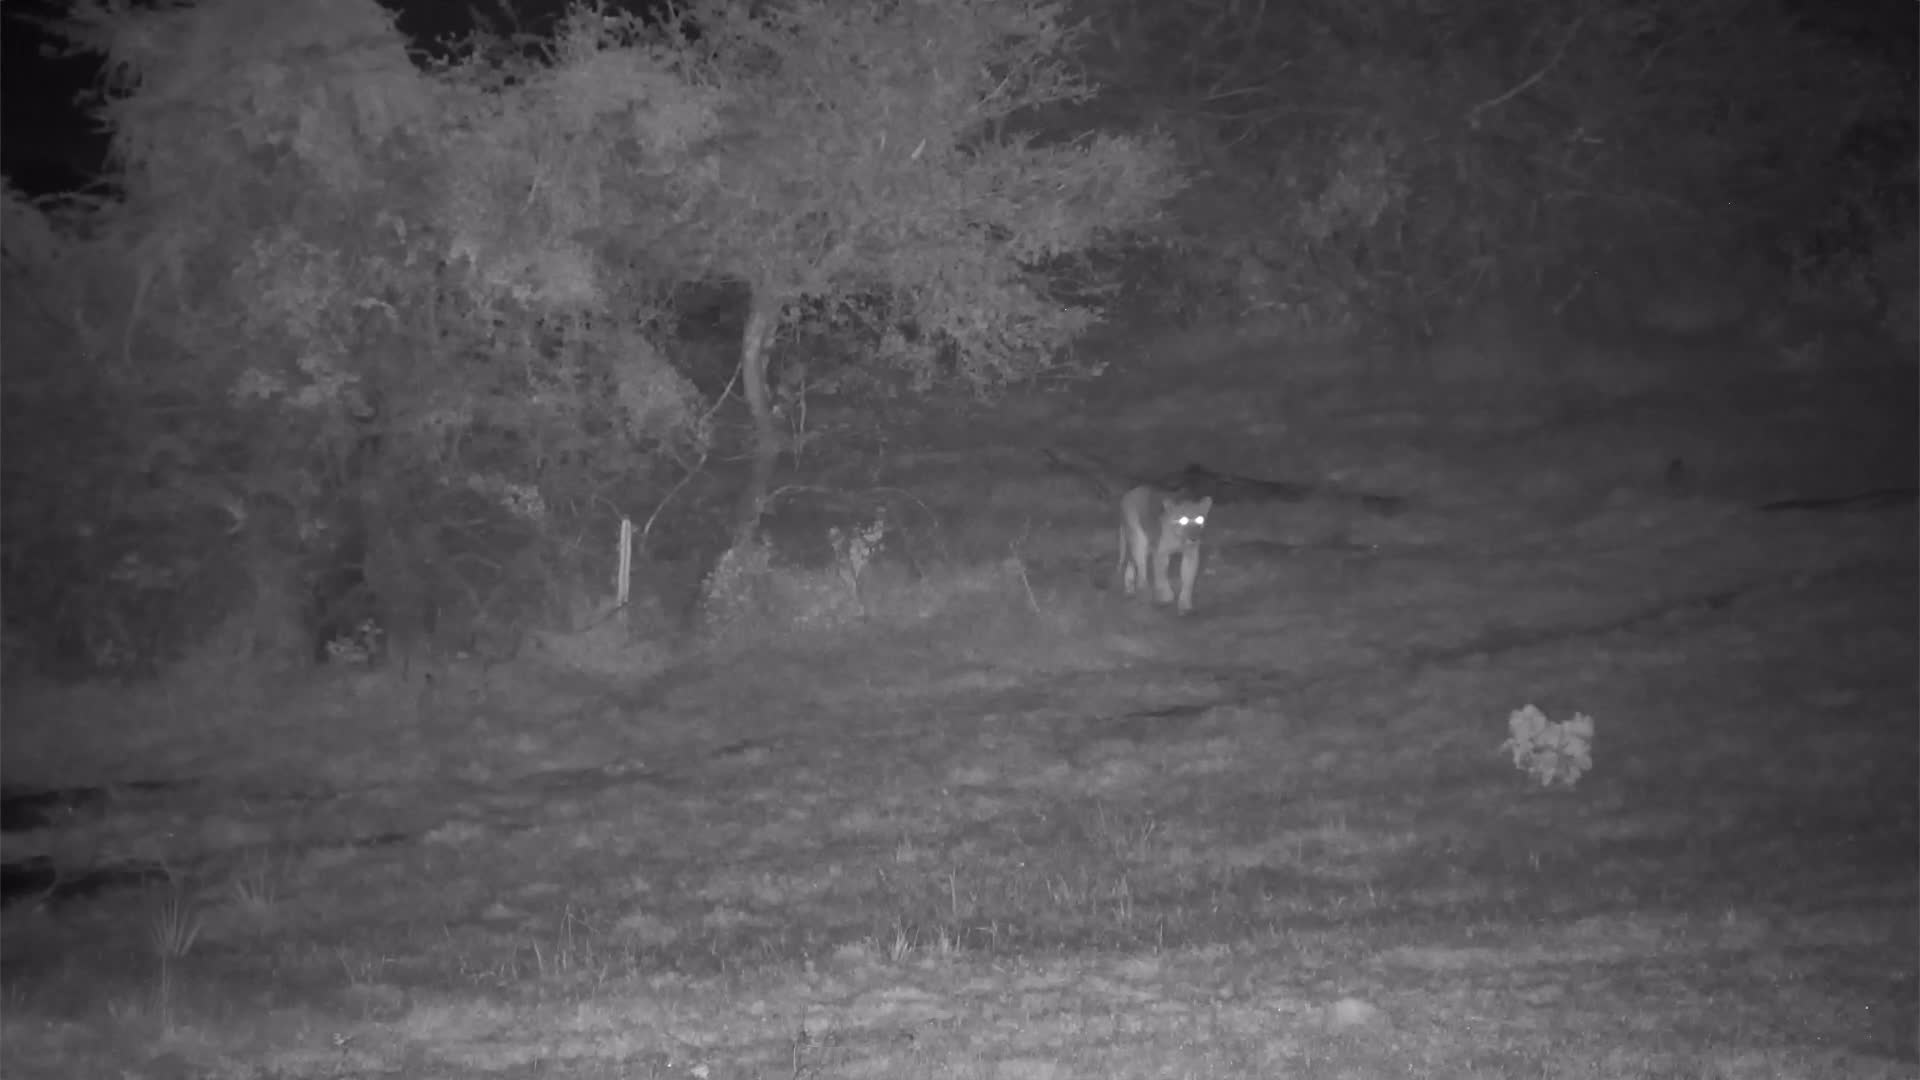 VIDEO: Lions watching something at the other side of the waterhole and stalking